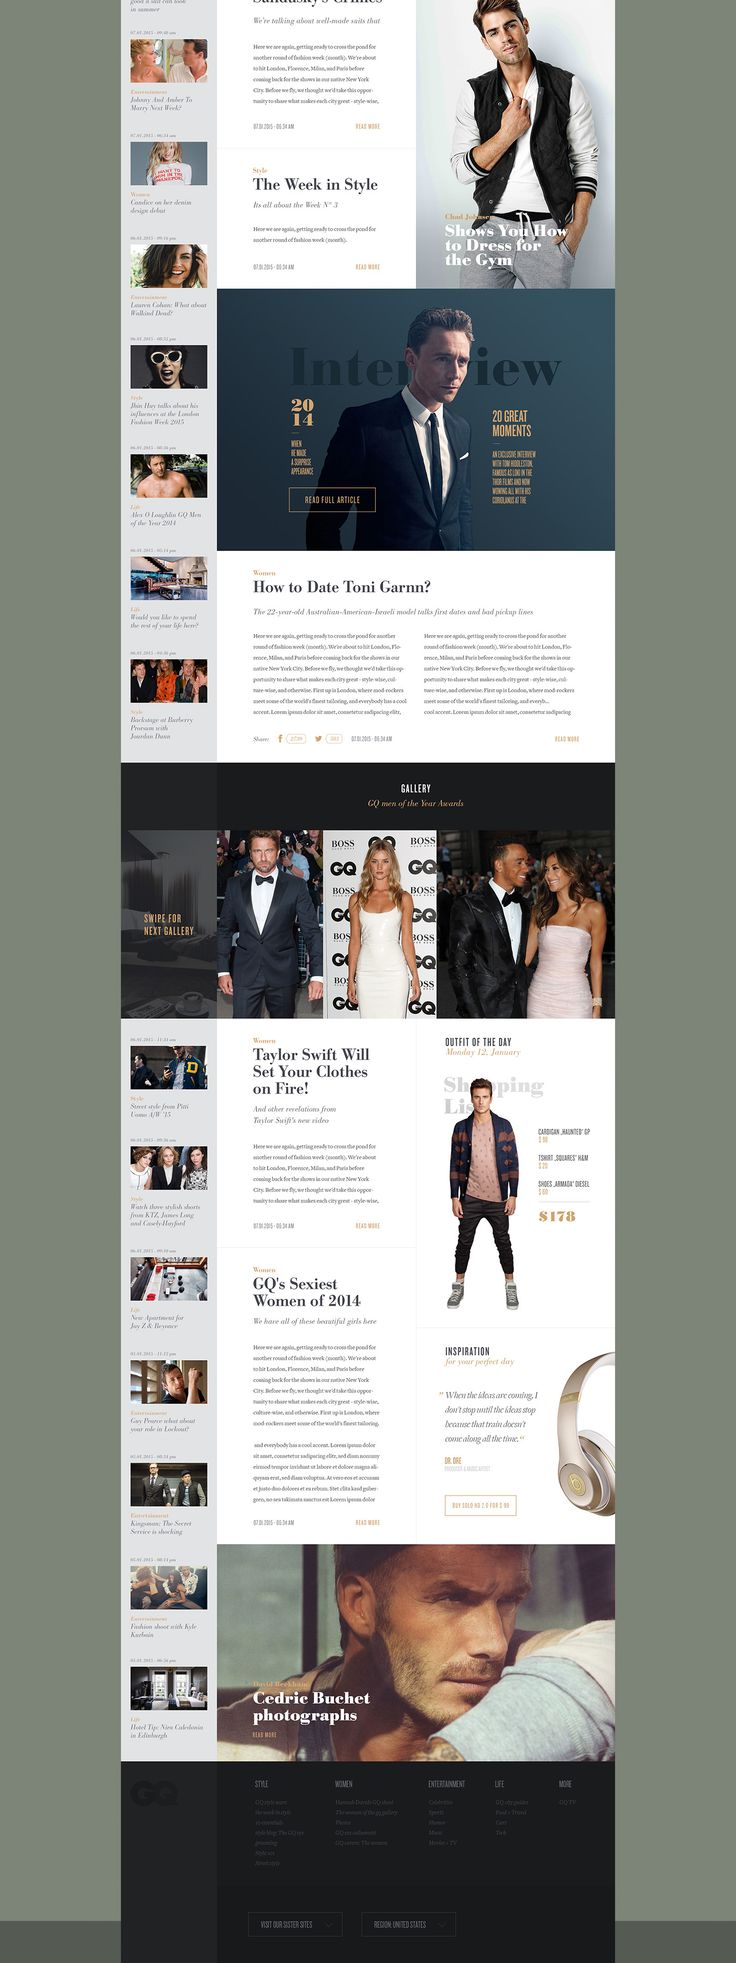 GQ Redesign Concept on Behance